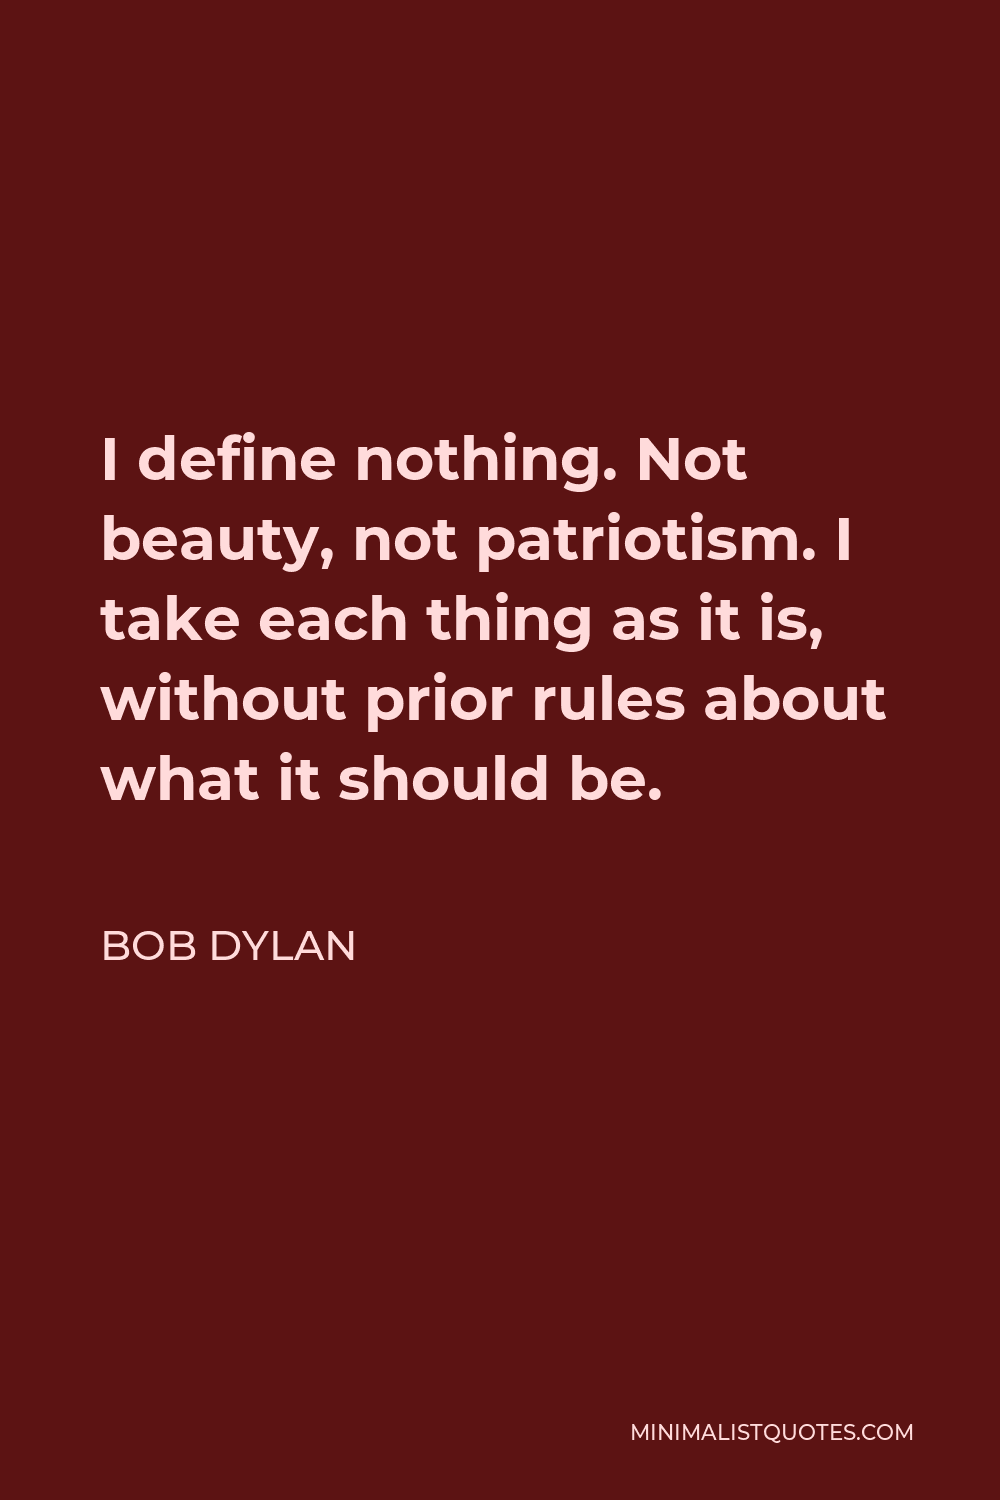 Bob Dylan Quote - I define nothing. Not beauty, not patriotism. I take each thing as it is, without prior rules about what it should be.